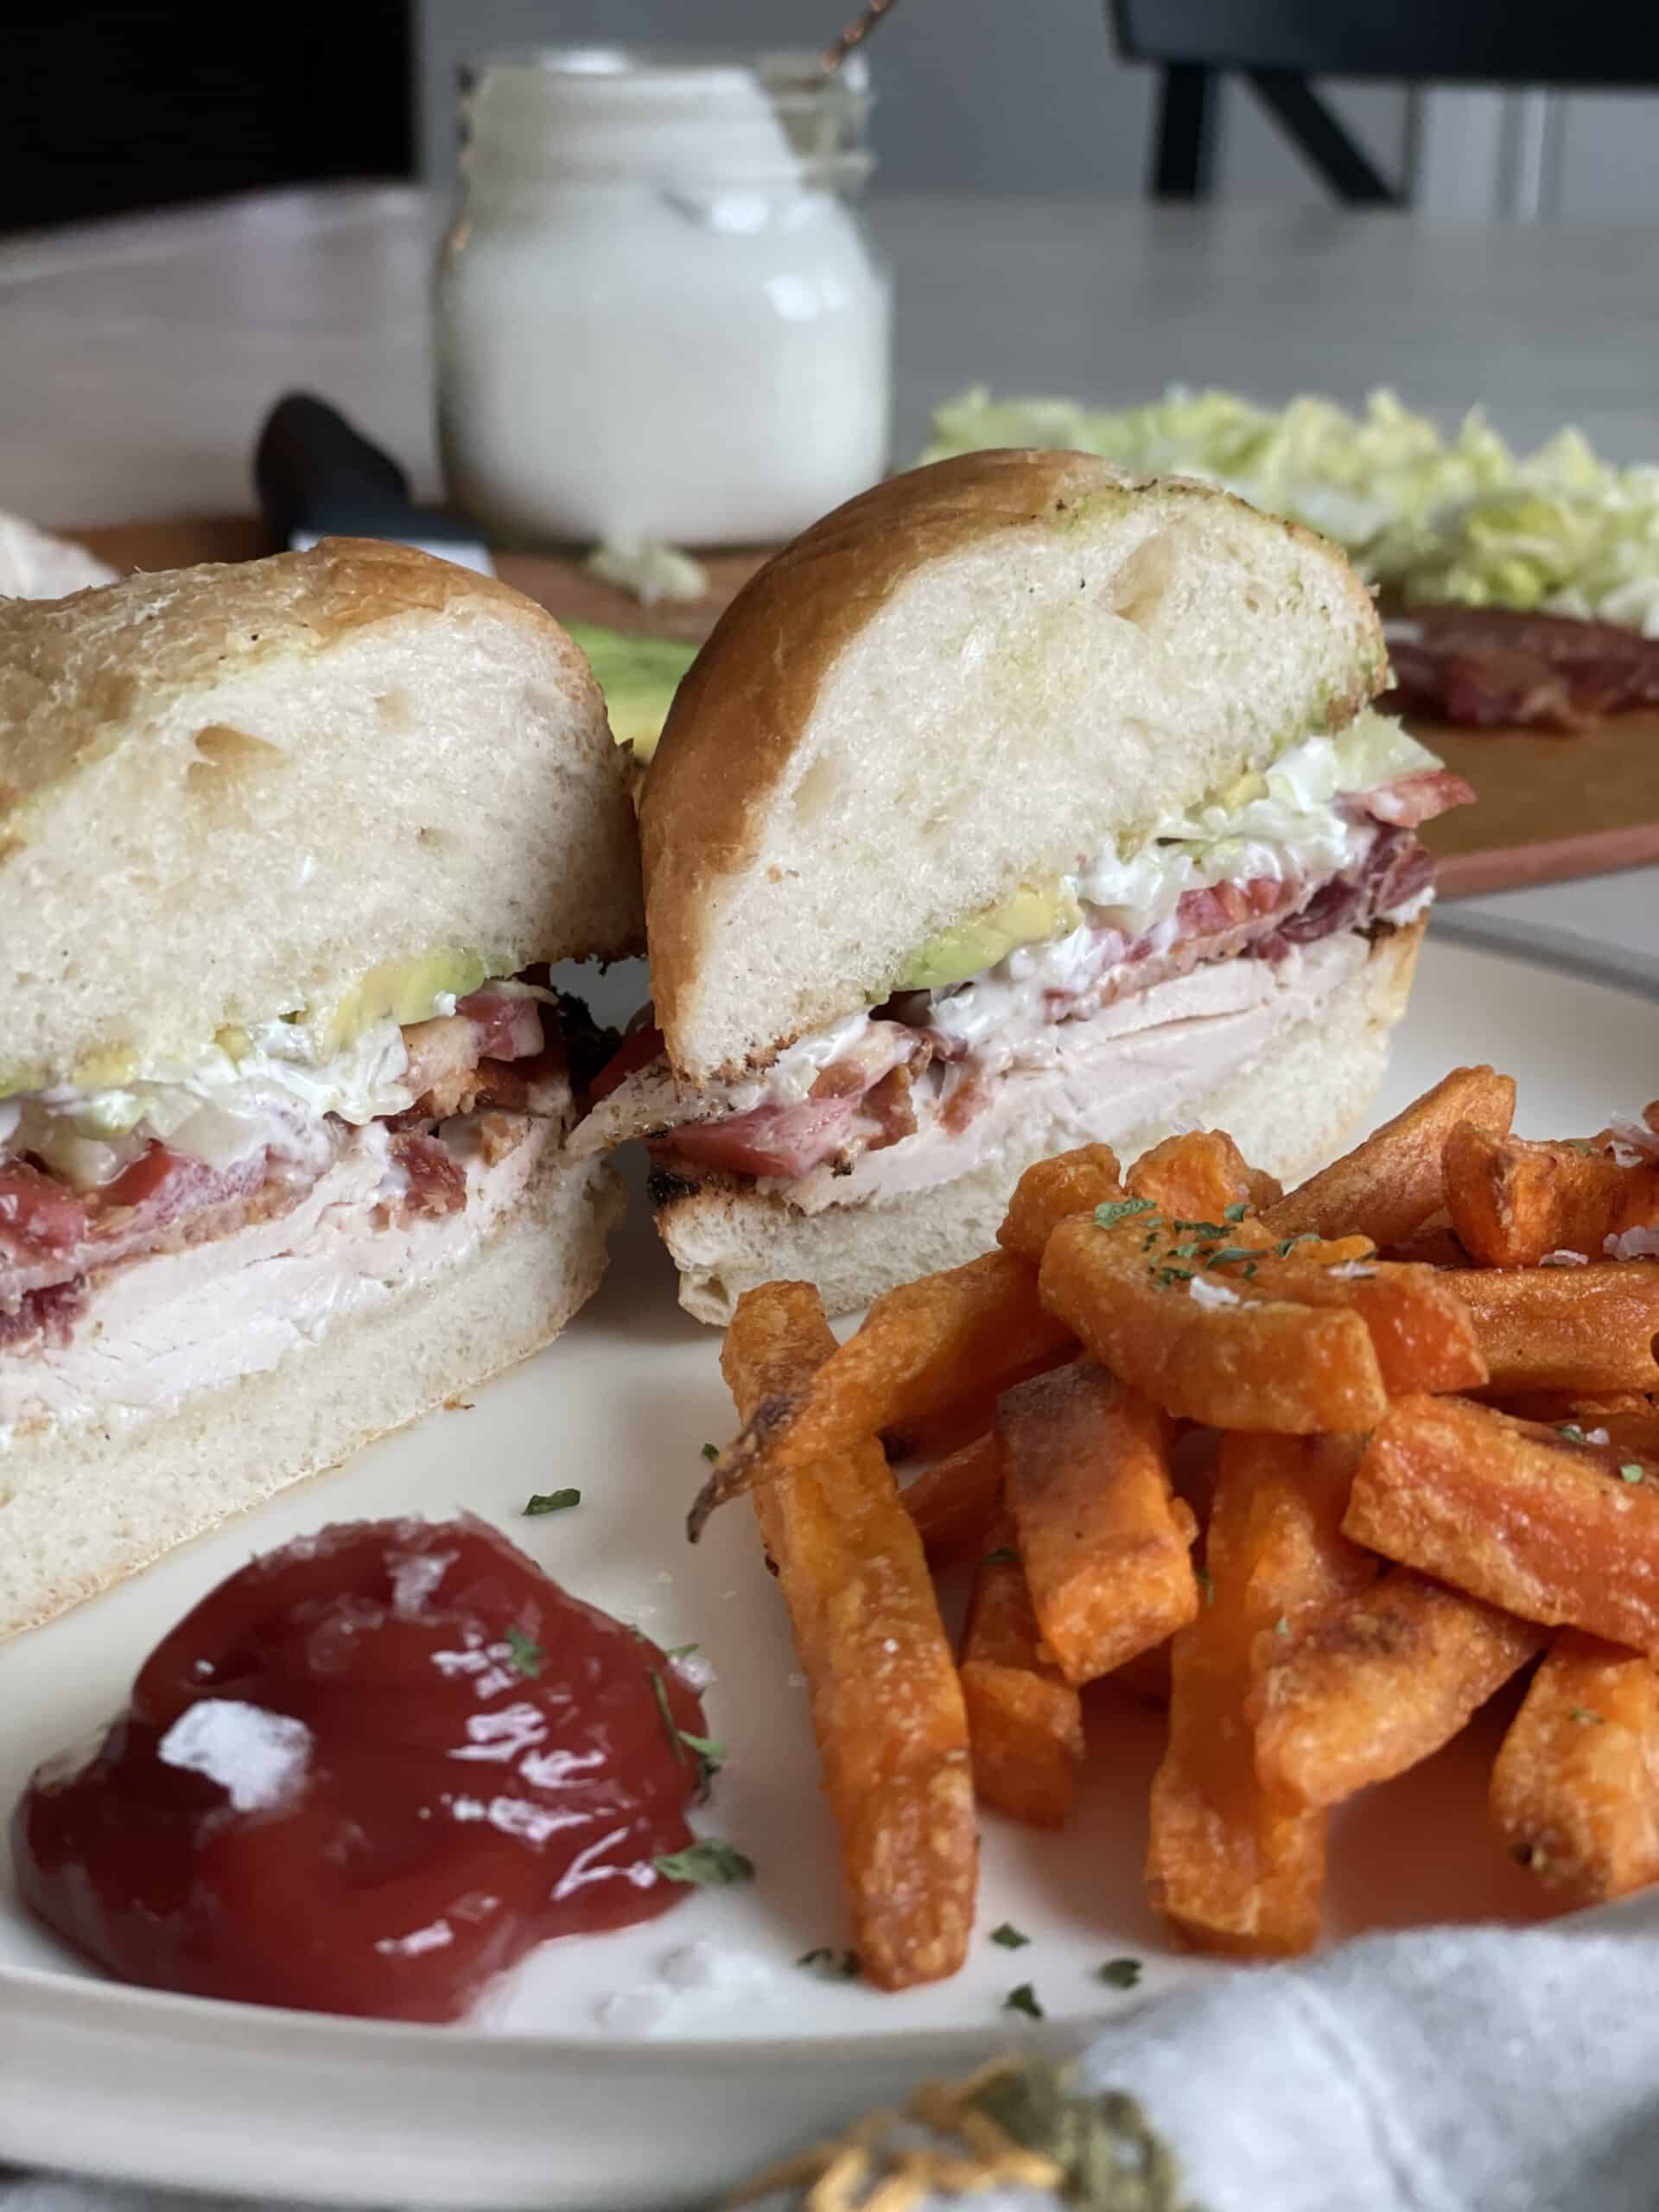 a white plate with a chicken cob sandwich cut on a diagonal with sweet potato fries ketchup and a jar of blue cheesing in the background